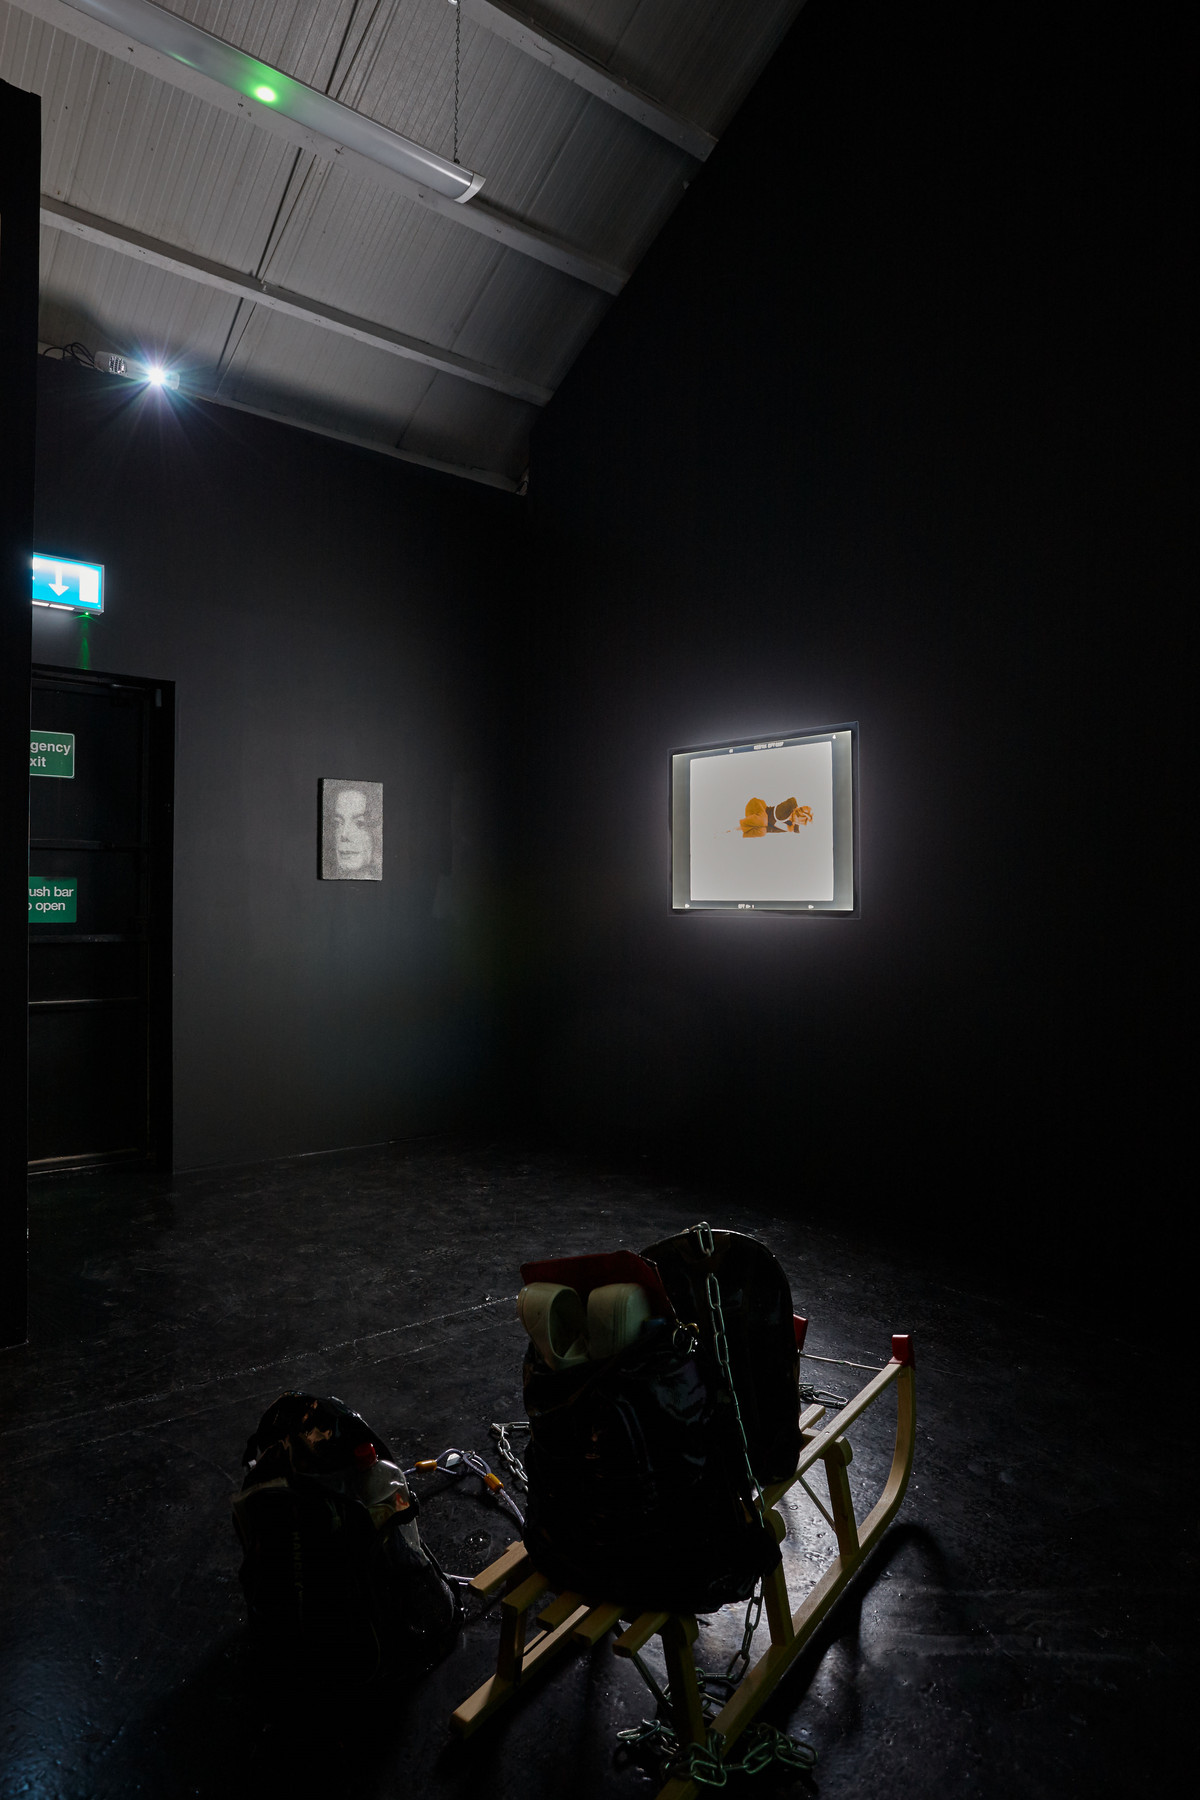 System of a Down - Installation view 11